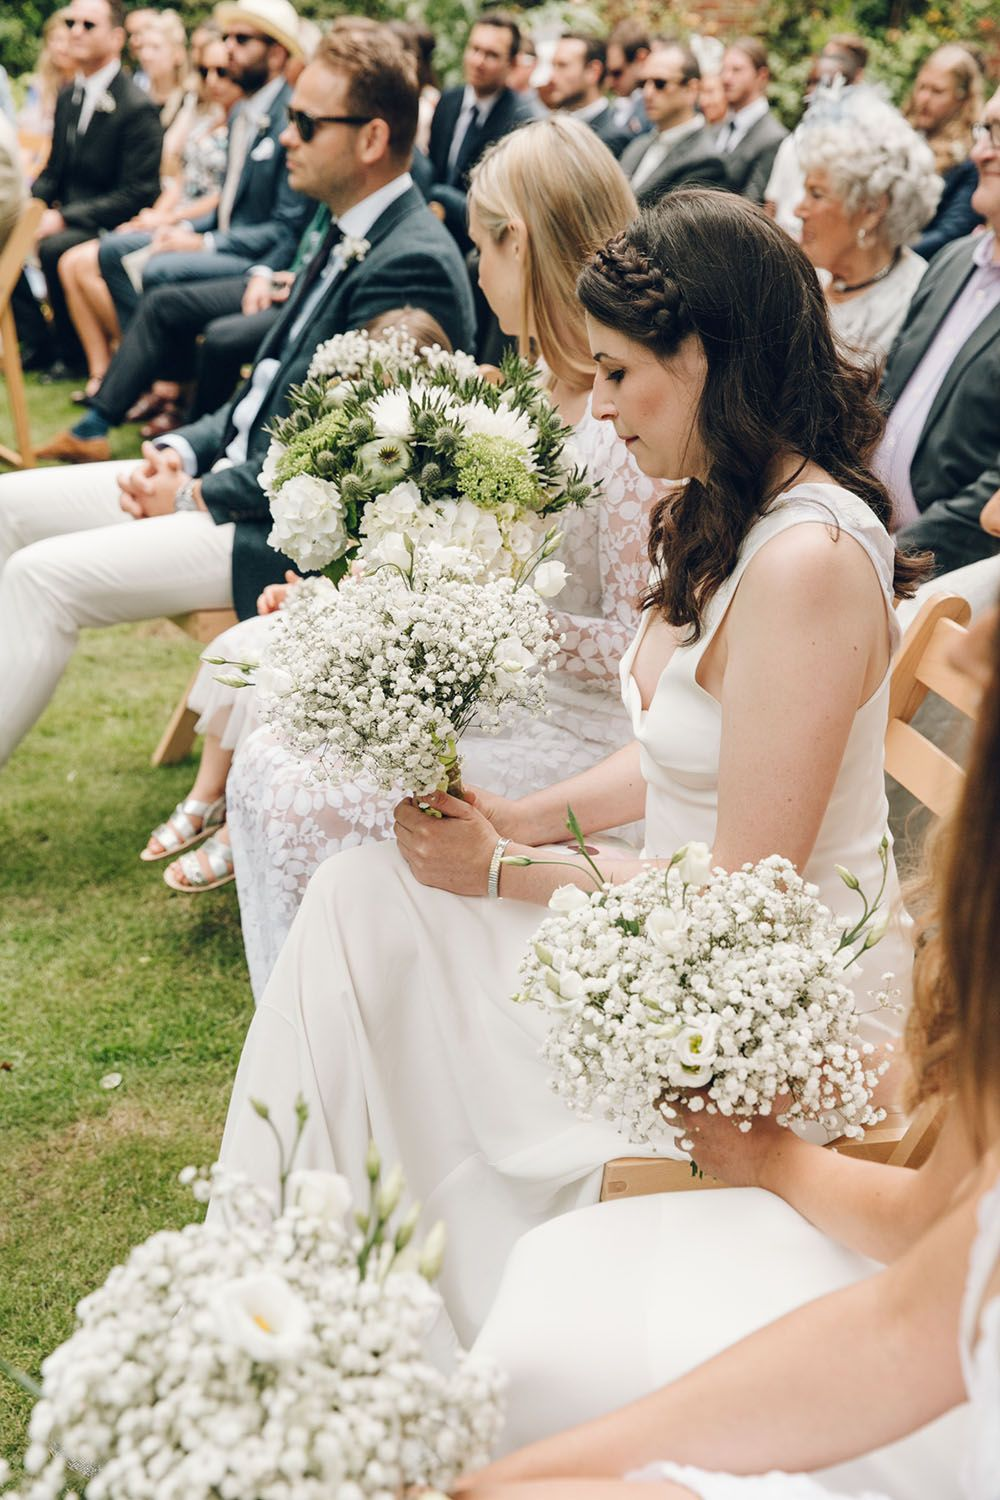 Harriet holling bridal with bridesmaids in all white dress bridesmaids in white by harriet holling bridal harriet holling bridal stretch tent at ombrellifo Images